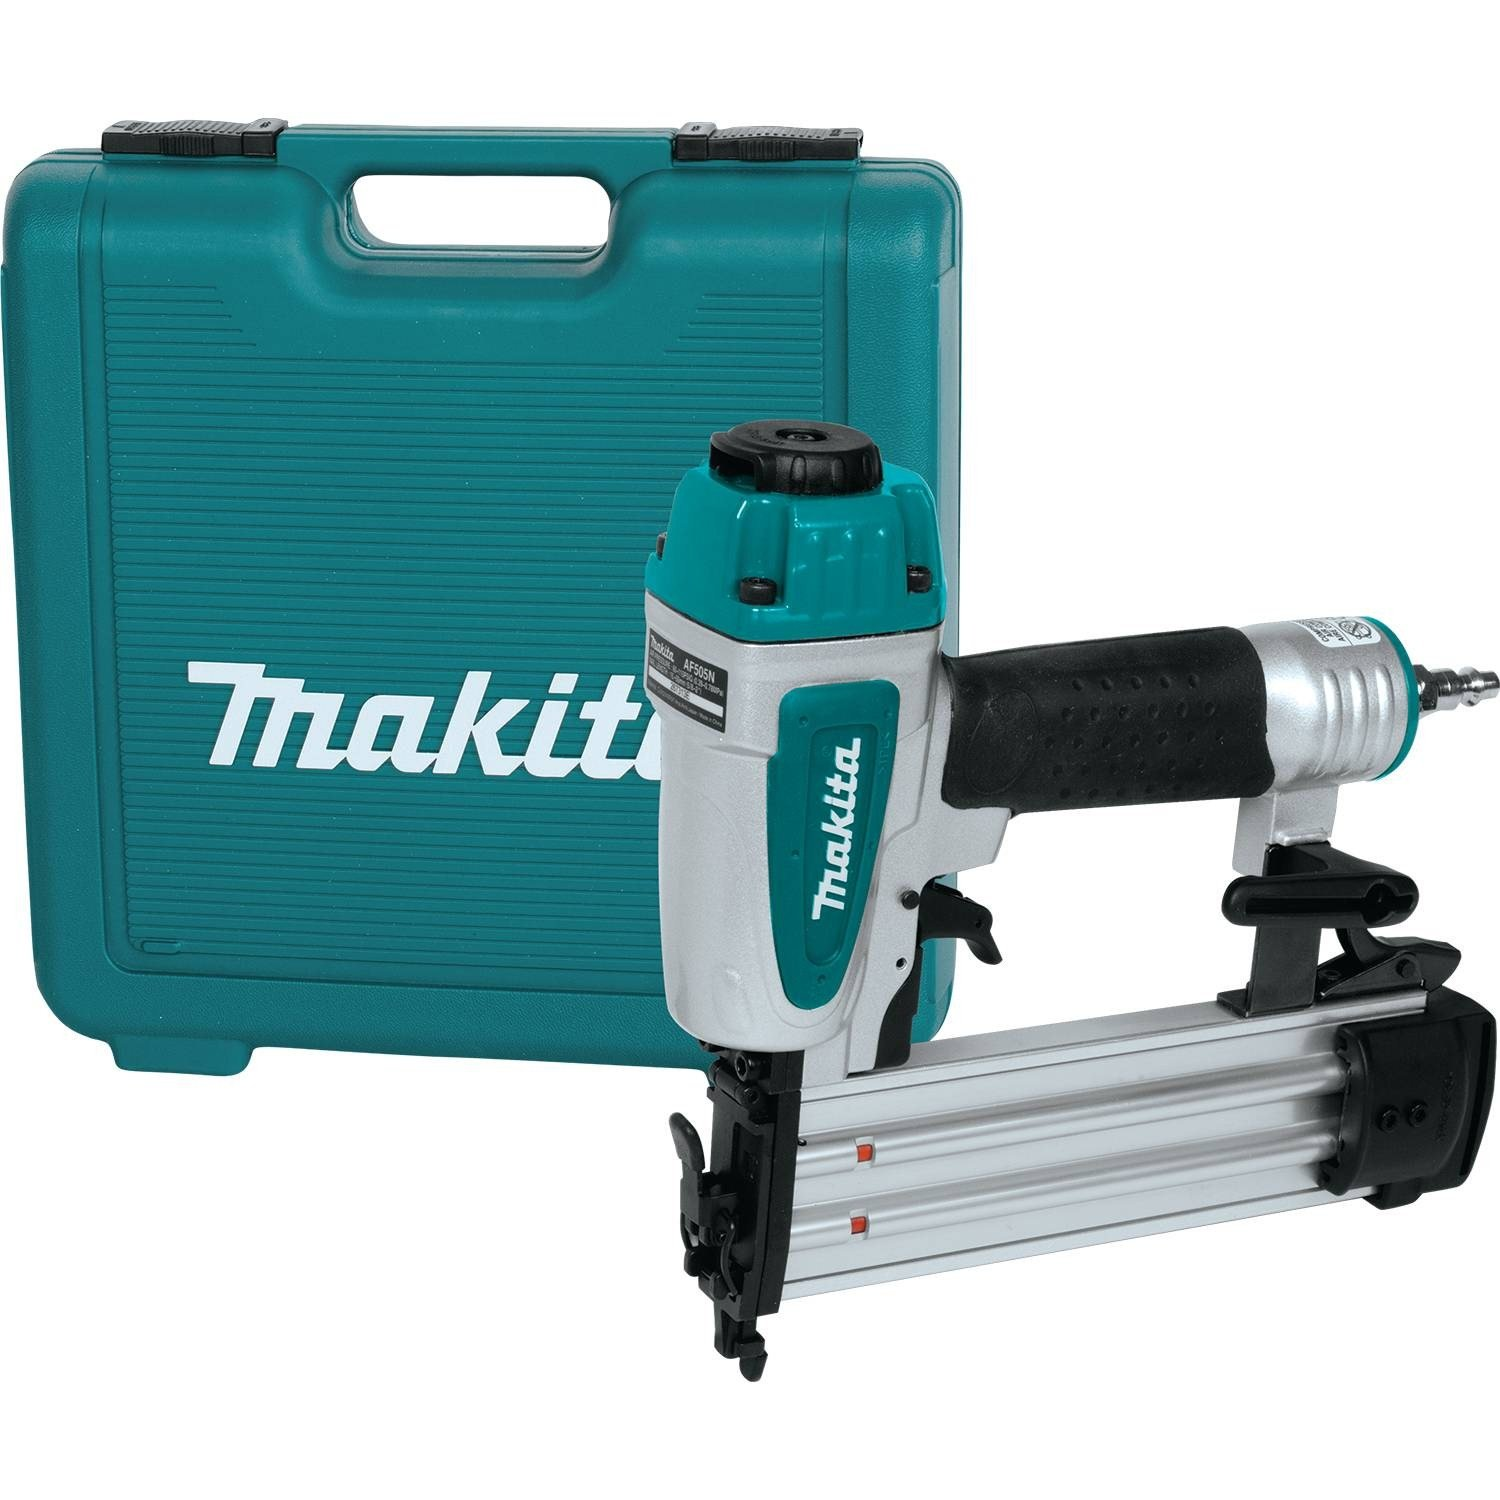 Best Electric Brad Nailers on The Market (2019)